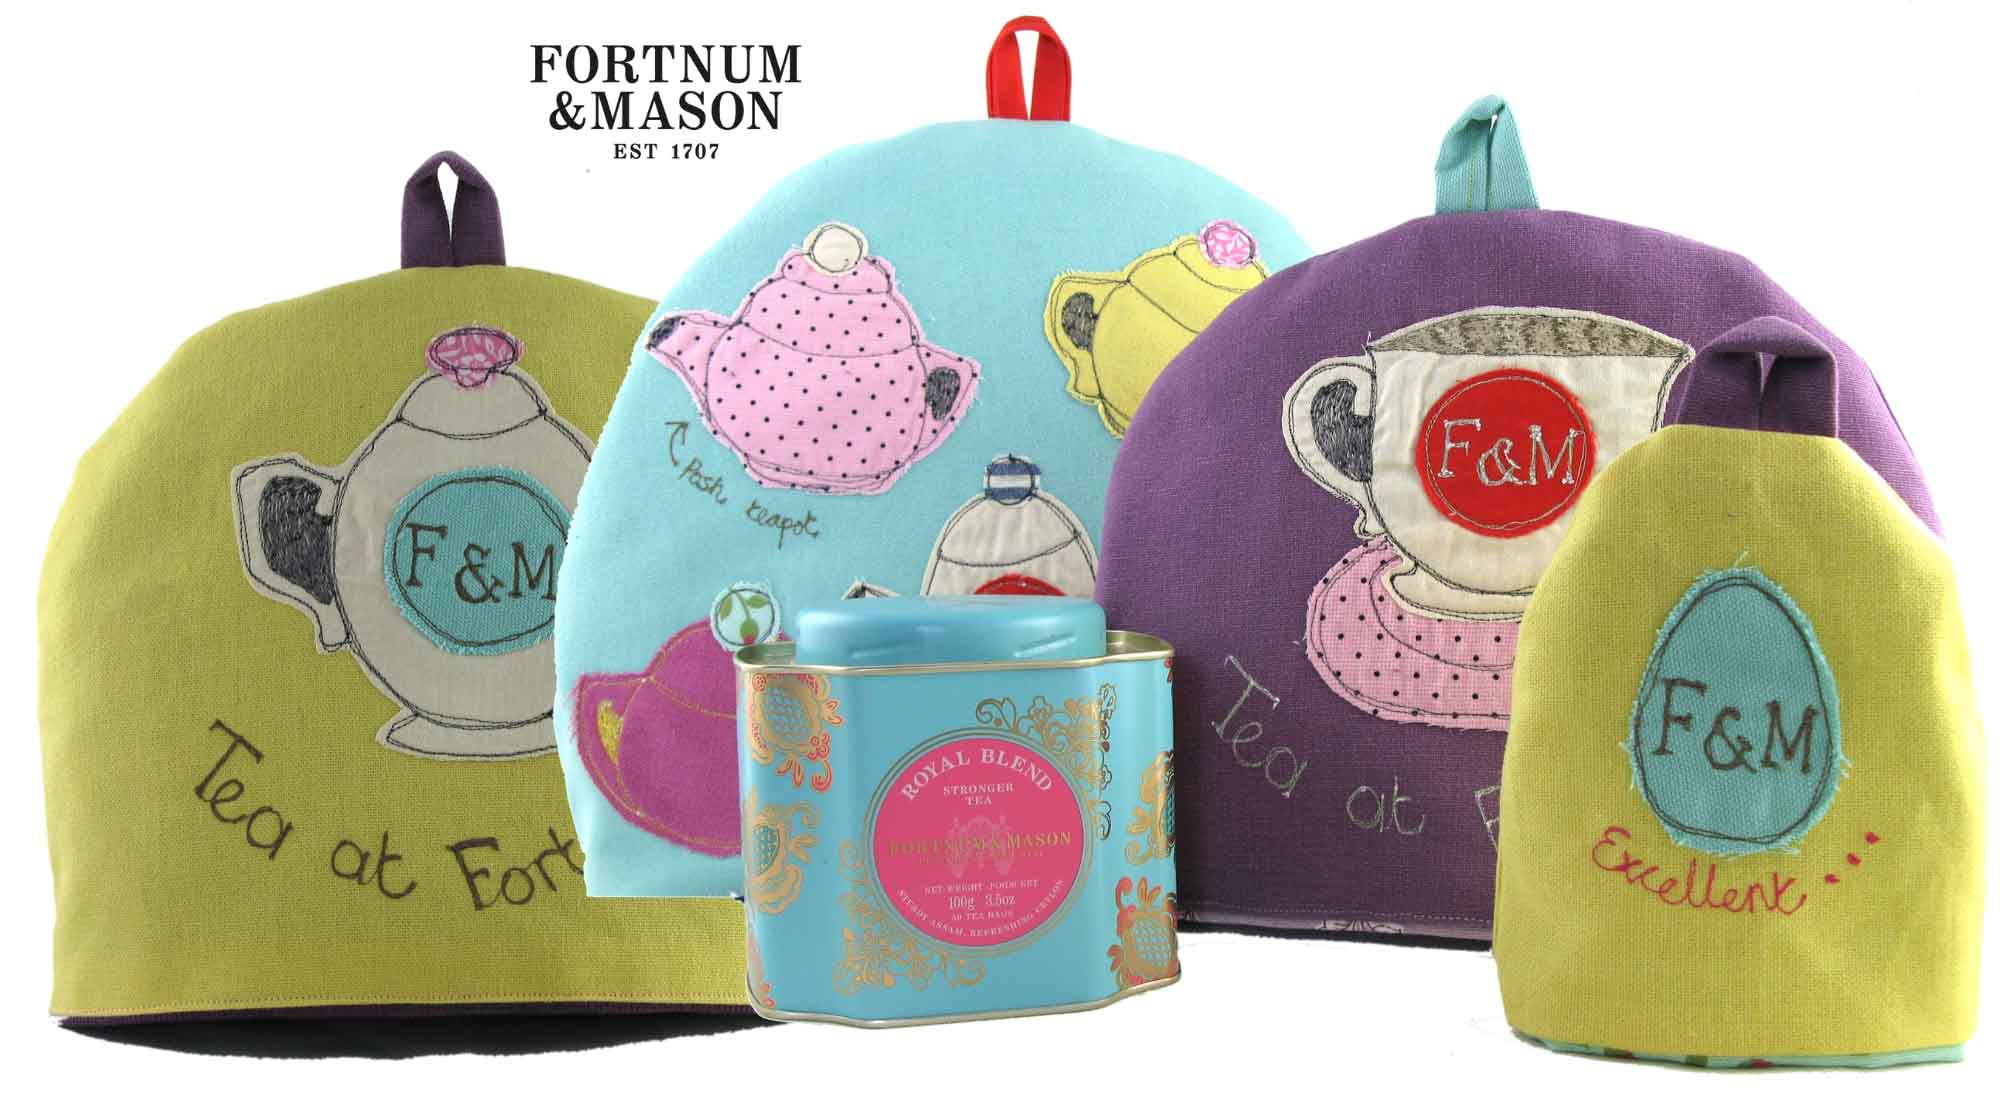 Poppy Treffry for Fortnum and Mason